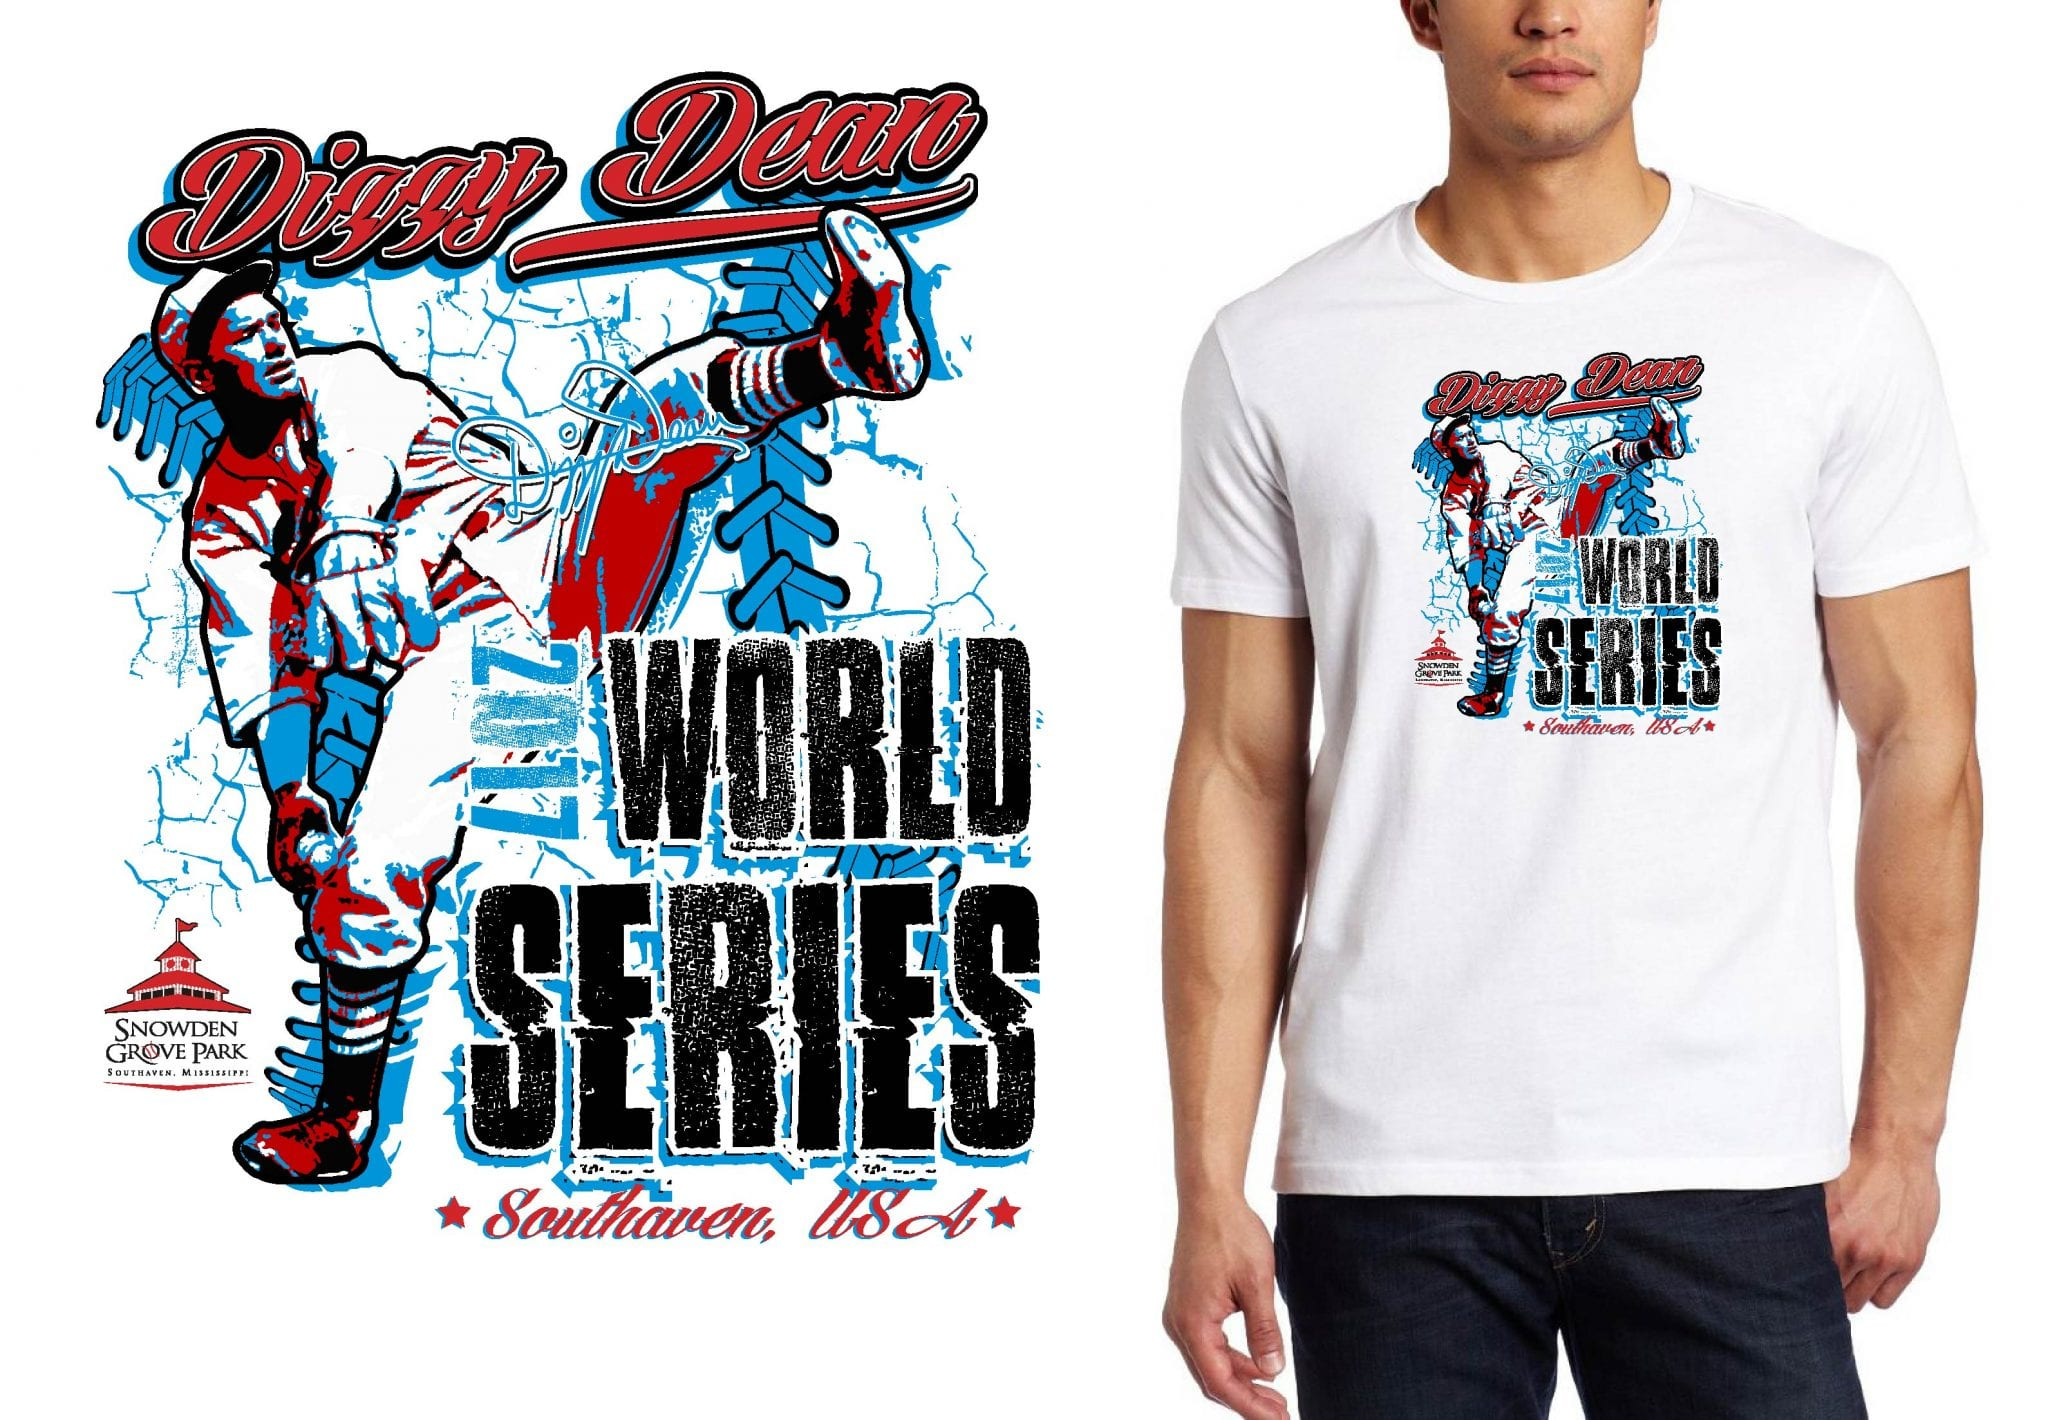 BASEBALL TSHIRT LOGO DESIGN CUSTOM AND CREATIVE BY UrArtStudio